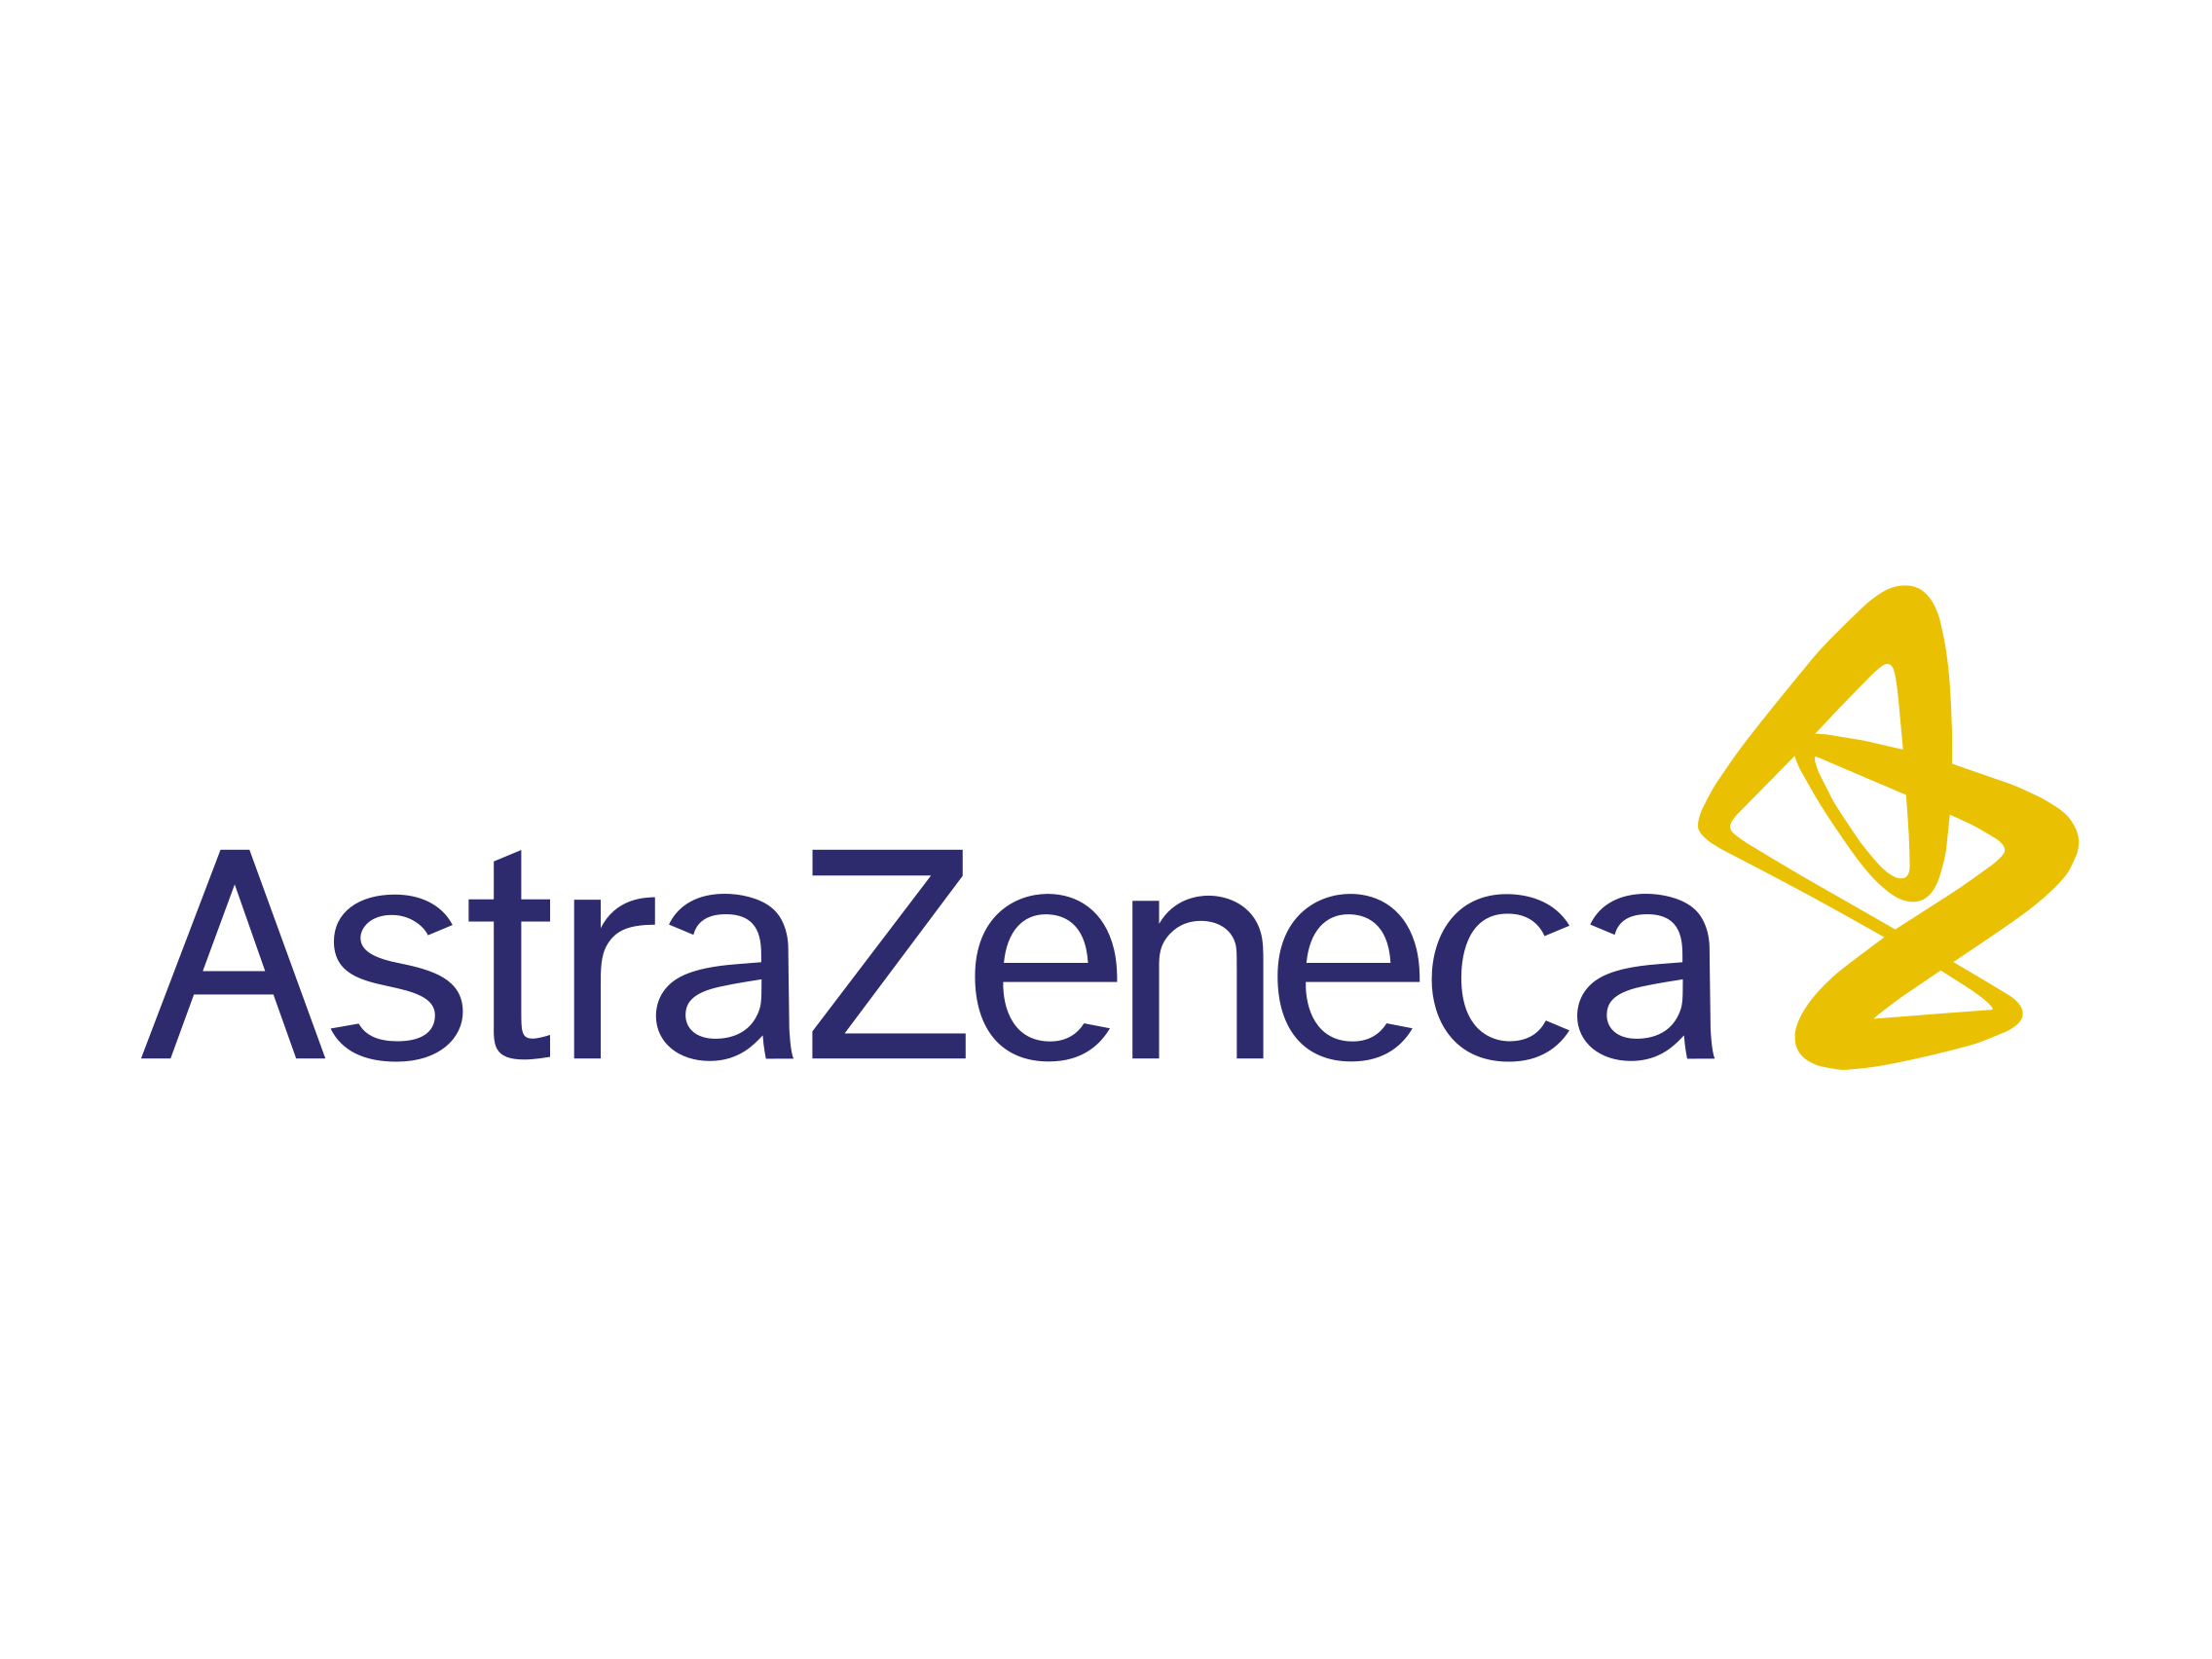 AstraZeneca-logo-and-wordmark.png